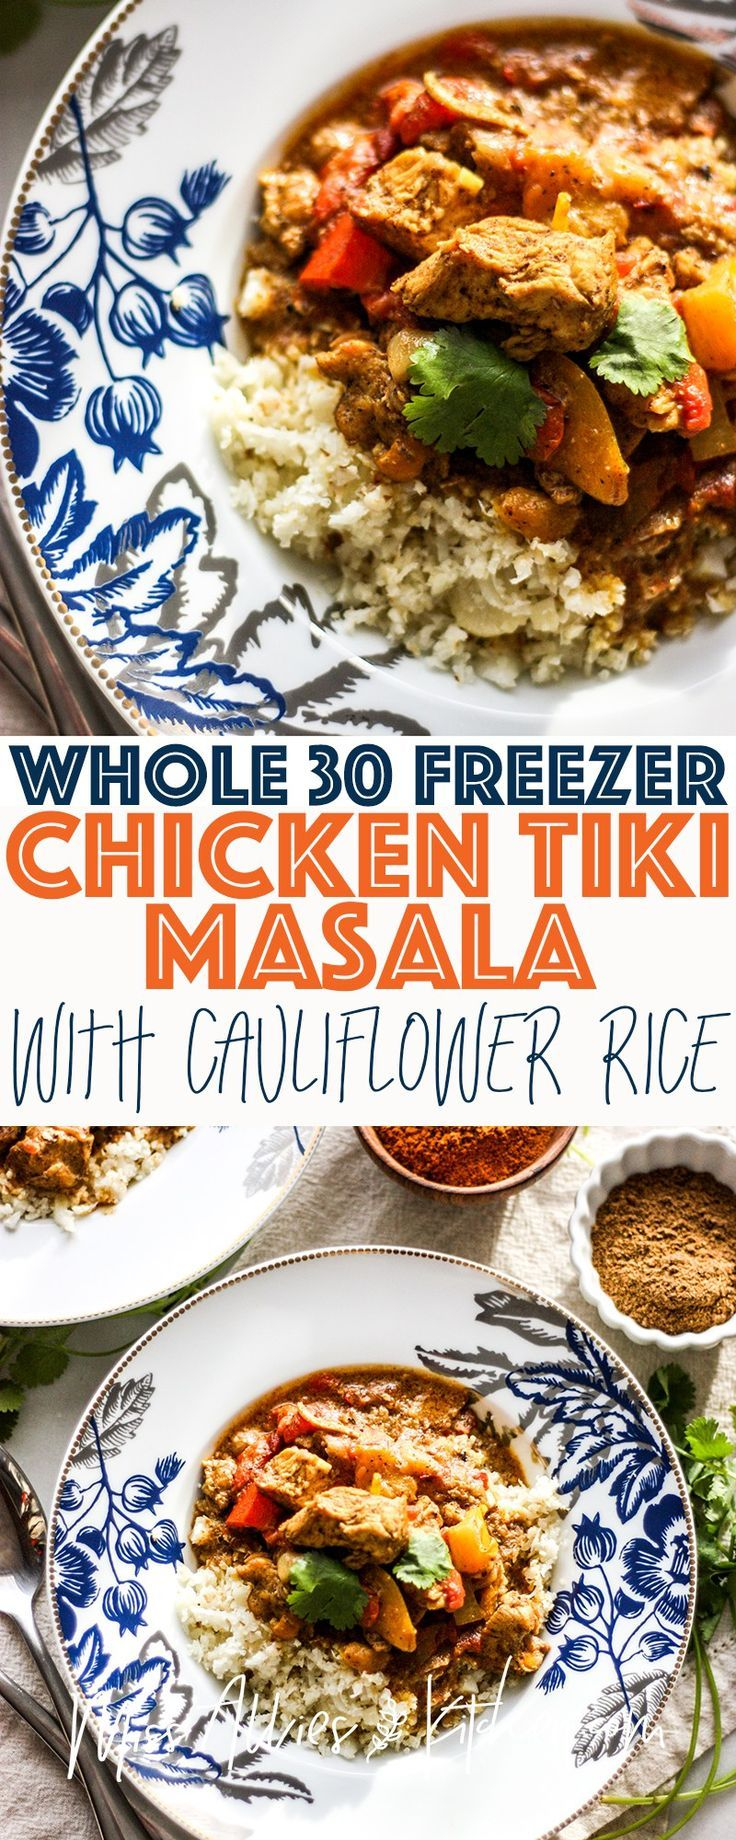 A cheap and easy #whole30 dinner packed with chicken for protein and cauliflower rice that you can make quick! Perfect for a party because you can meal prep it and freeze it and make when you're ready! #whole30 #healthy #healthydinner #paleo #glutenfree #dairyfree